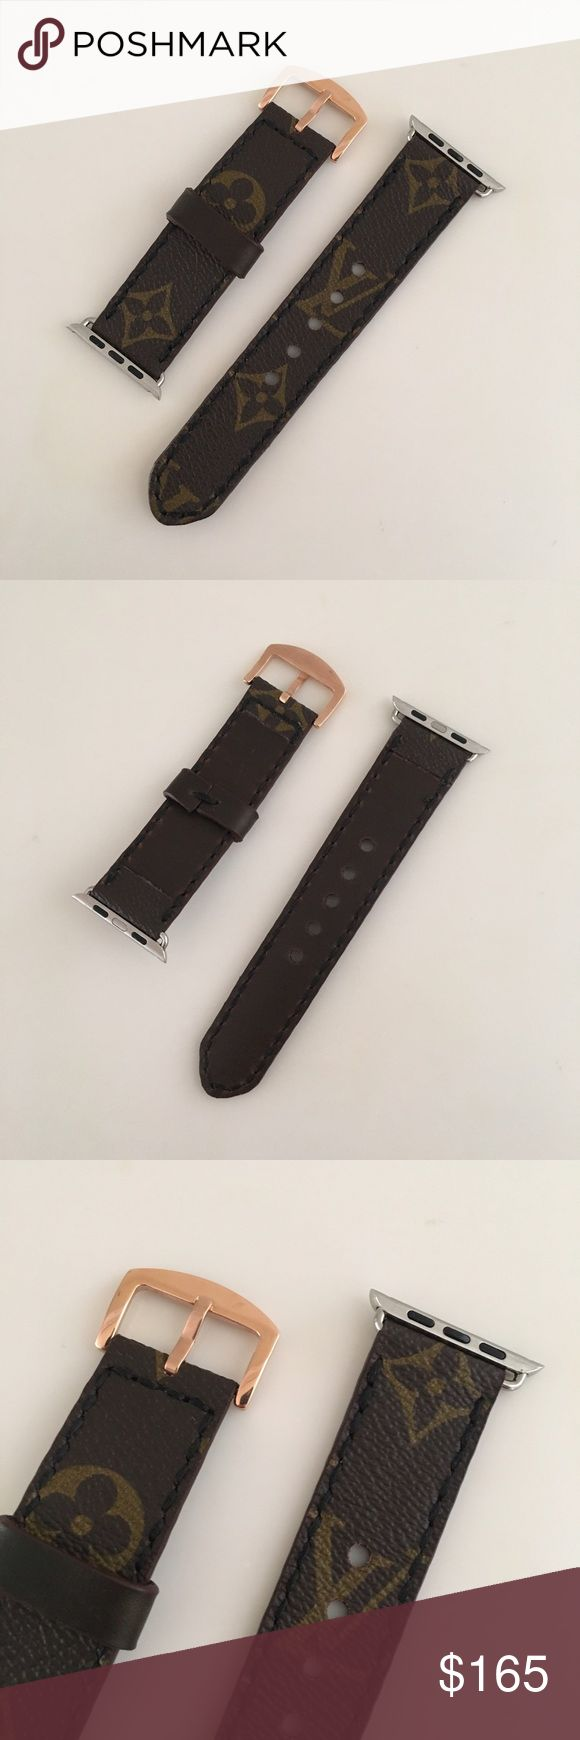 Custom Louis Vuitton Watch Strap Brand new, never used Louis Vuitton Apple watch strap for 42mm. It's a custom strap that is handmade by The leather from a recycled Louis Vuitton bag, lined with Horween Chrimexcel leather and sticker with white color waxed thread. 42mm Apple Watch adapters with a rose gold buckle. Louis Vuitton Accessories Watches